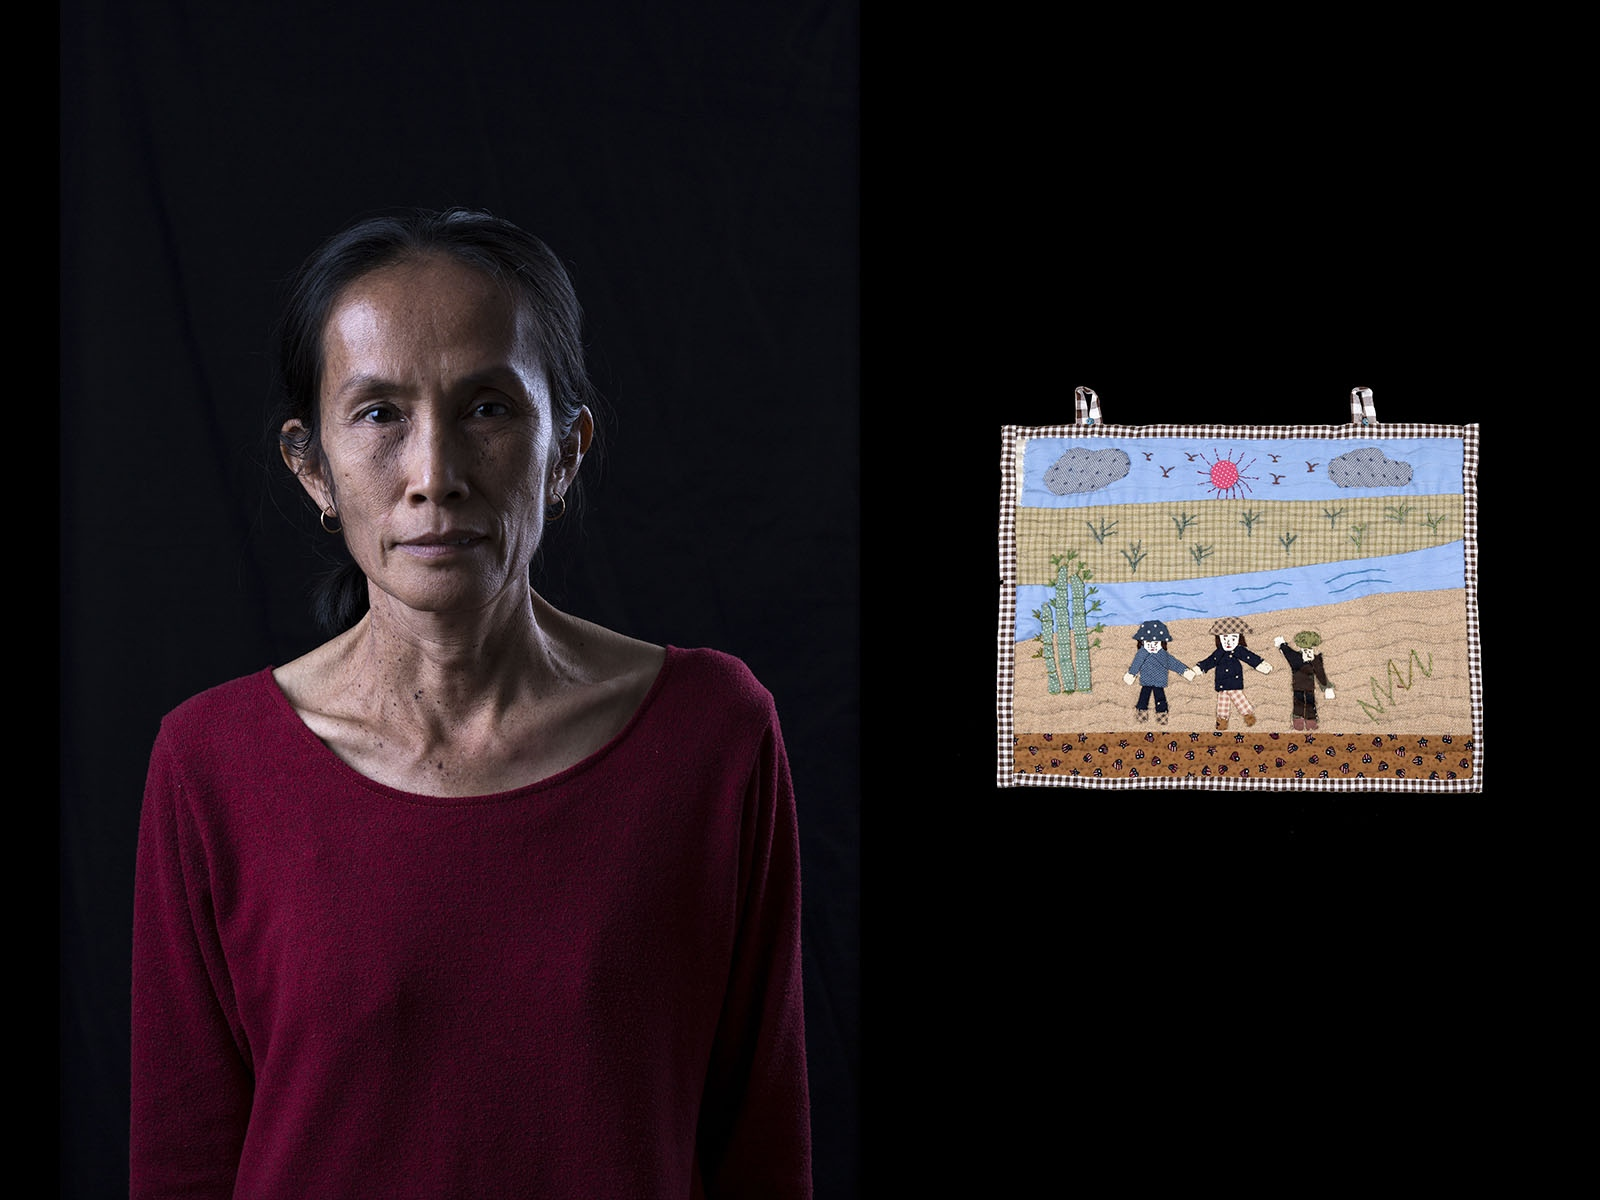 Sopha Ngamsombat is a member of the Rak Ban Heang environmental group in Lampang Province, Thailand, who are fighting against the construction of a large open-pit coal mine.